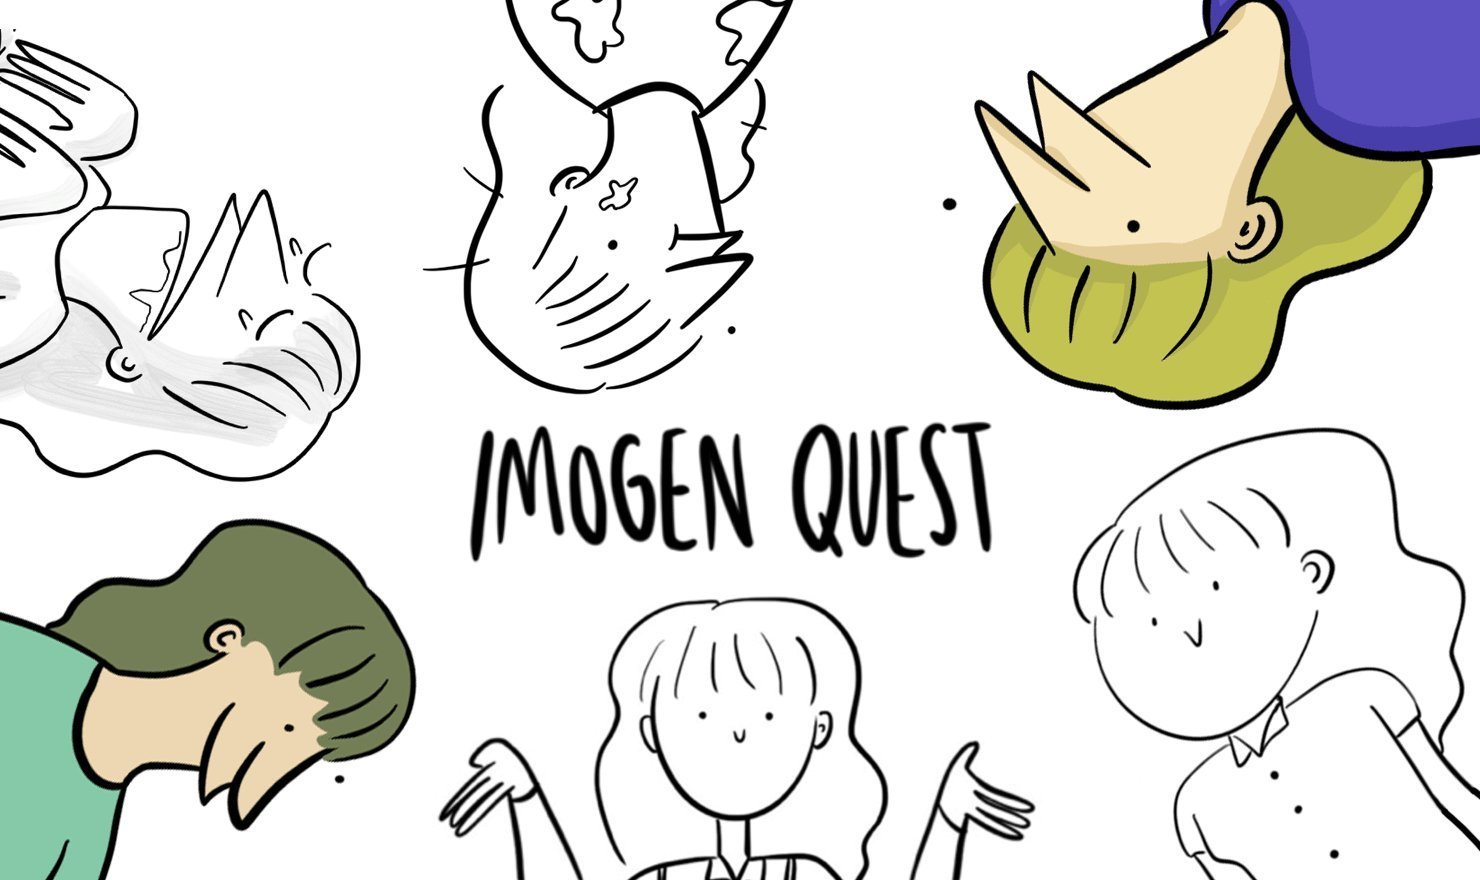 Meet Your Creator: 'Imogen Quest' Creator Olivia Walch